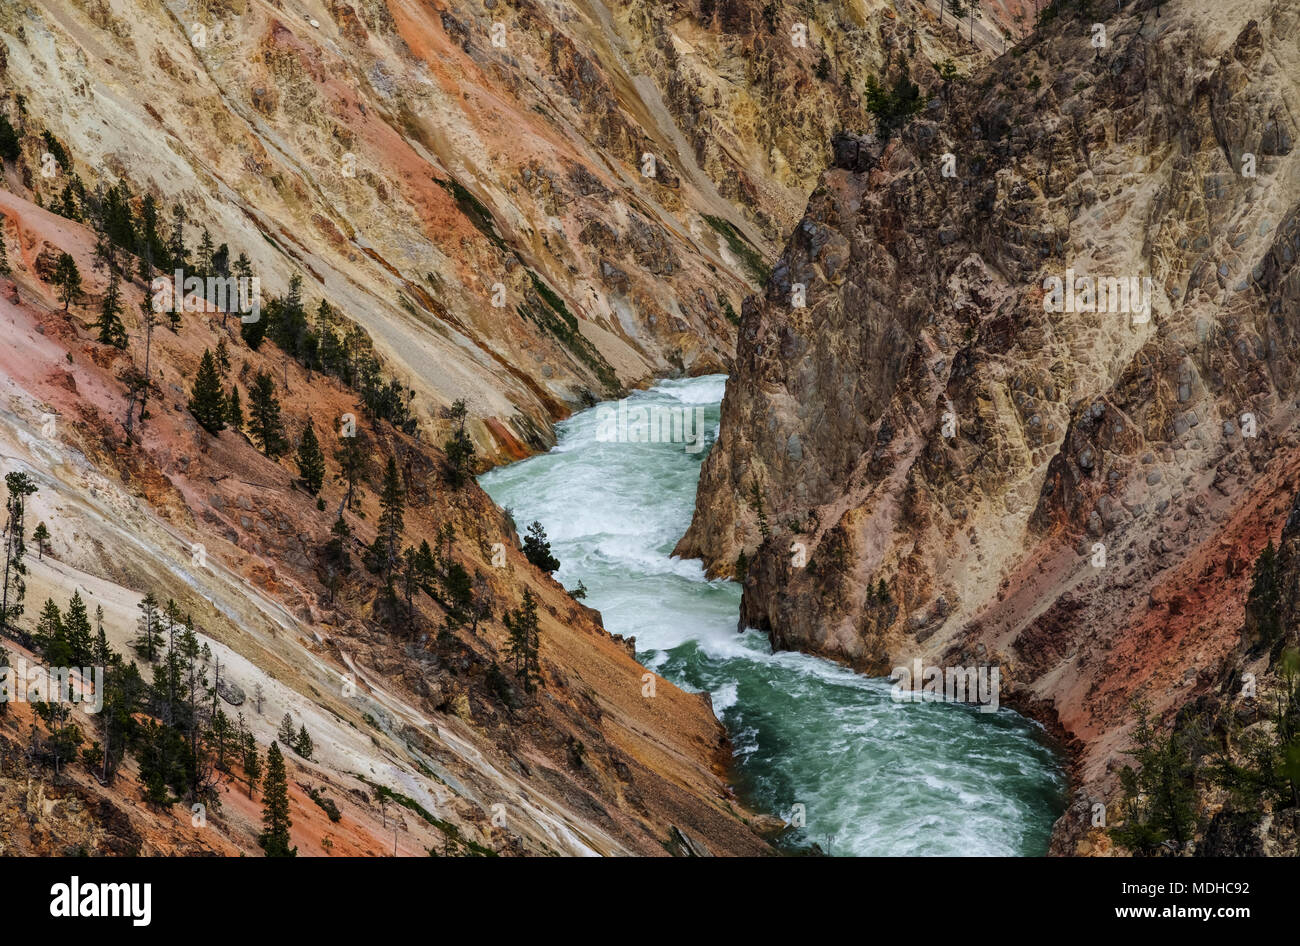 Yellowstone River flowing through the canyon, Yellowstone National Park; Wyoming, United States of America - Stock Image